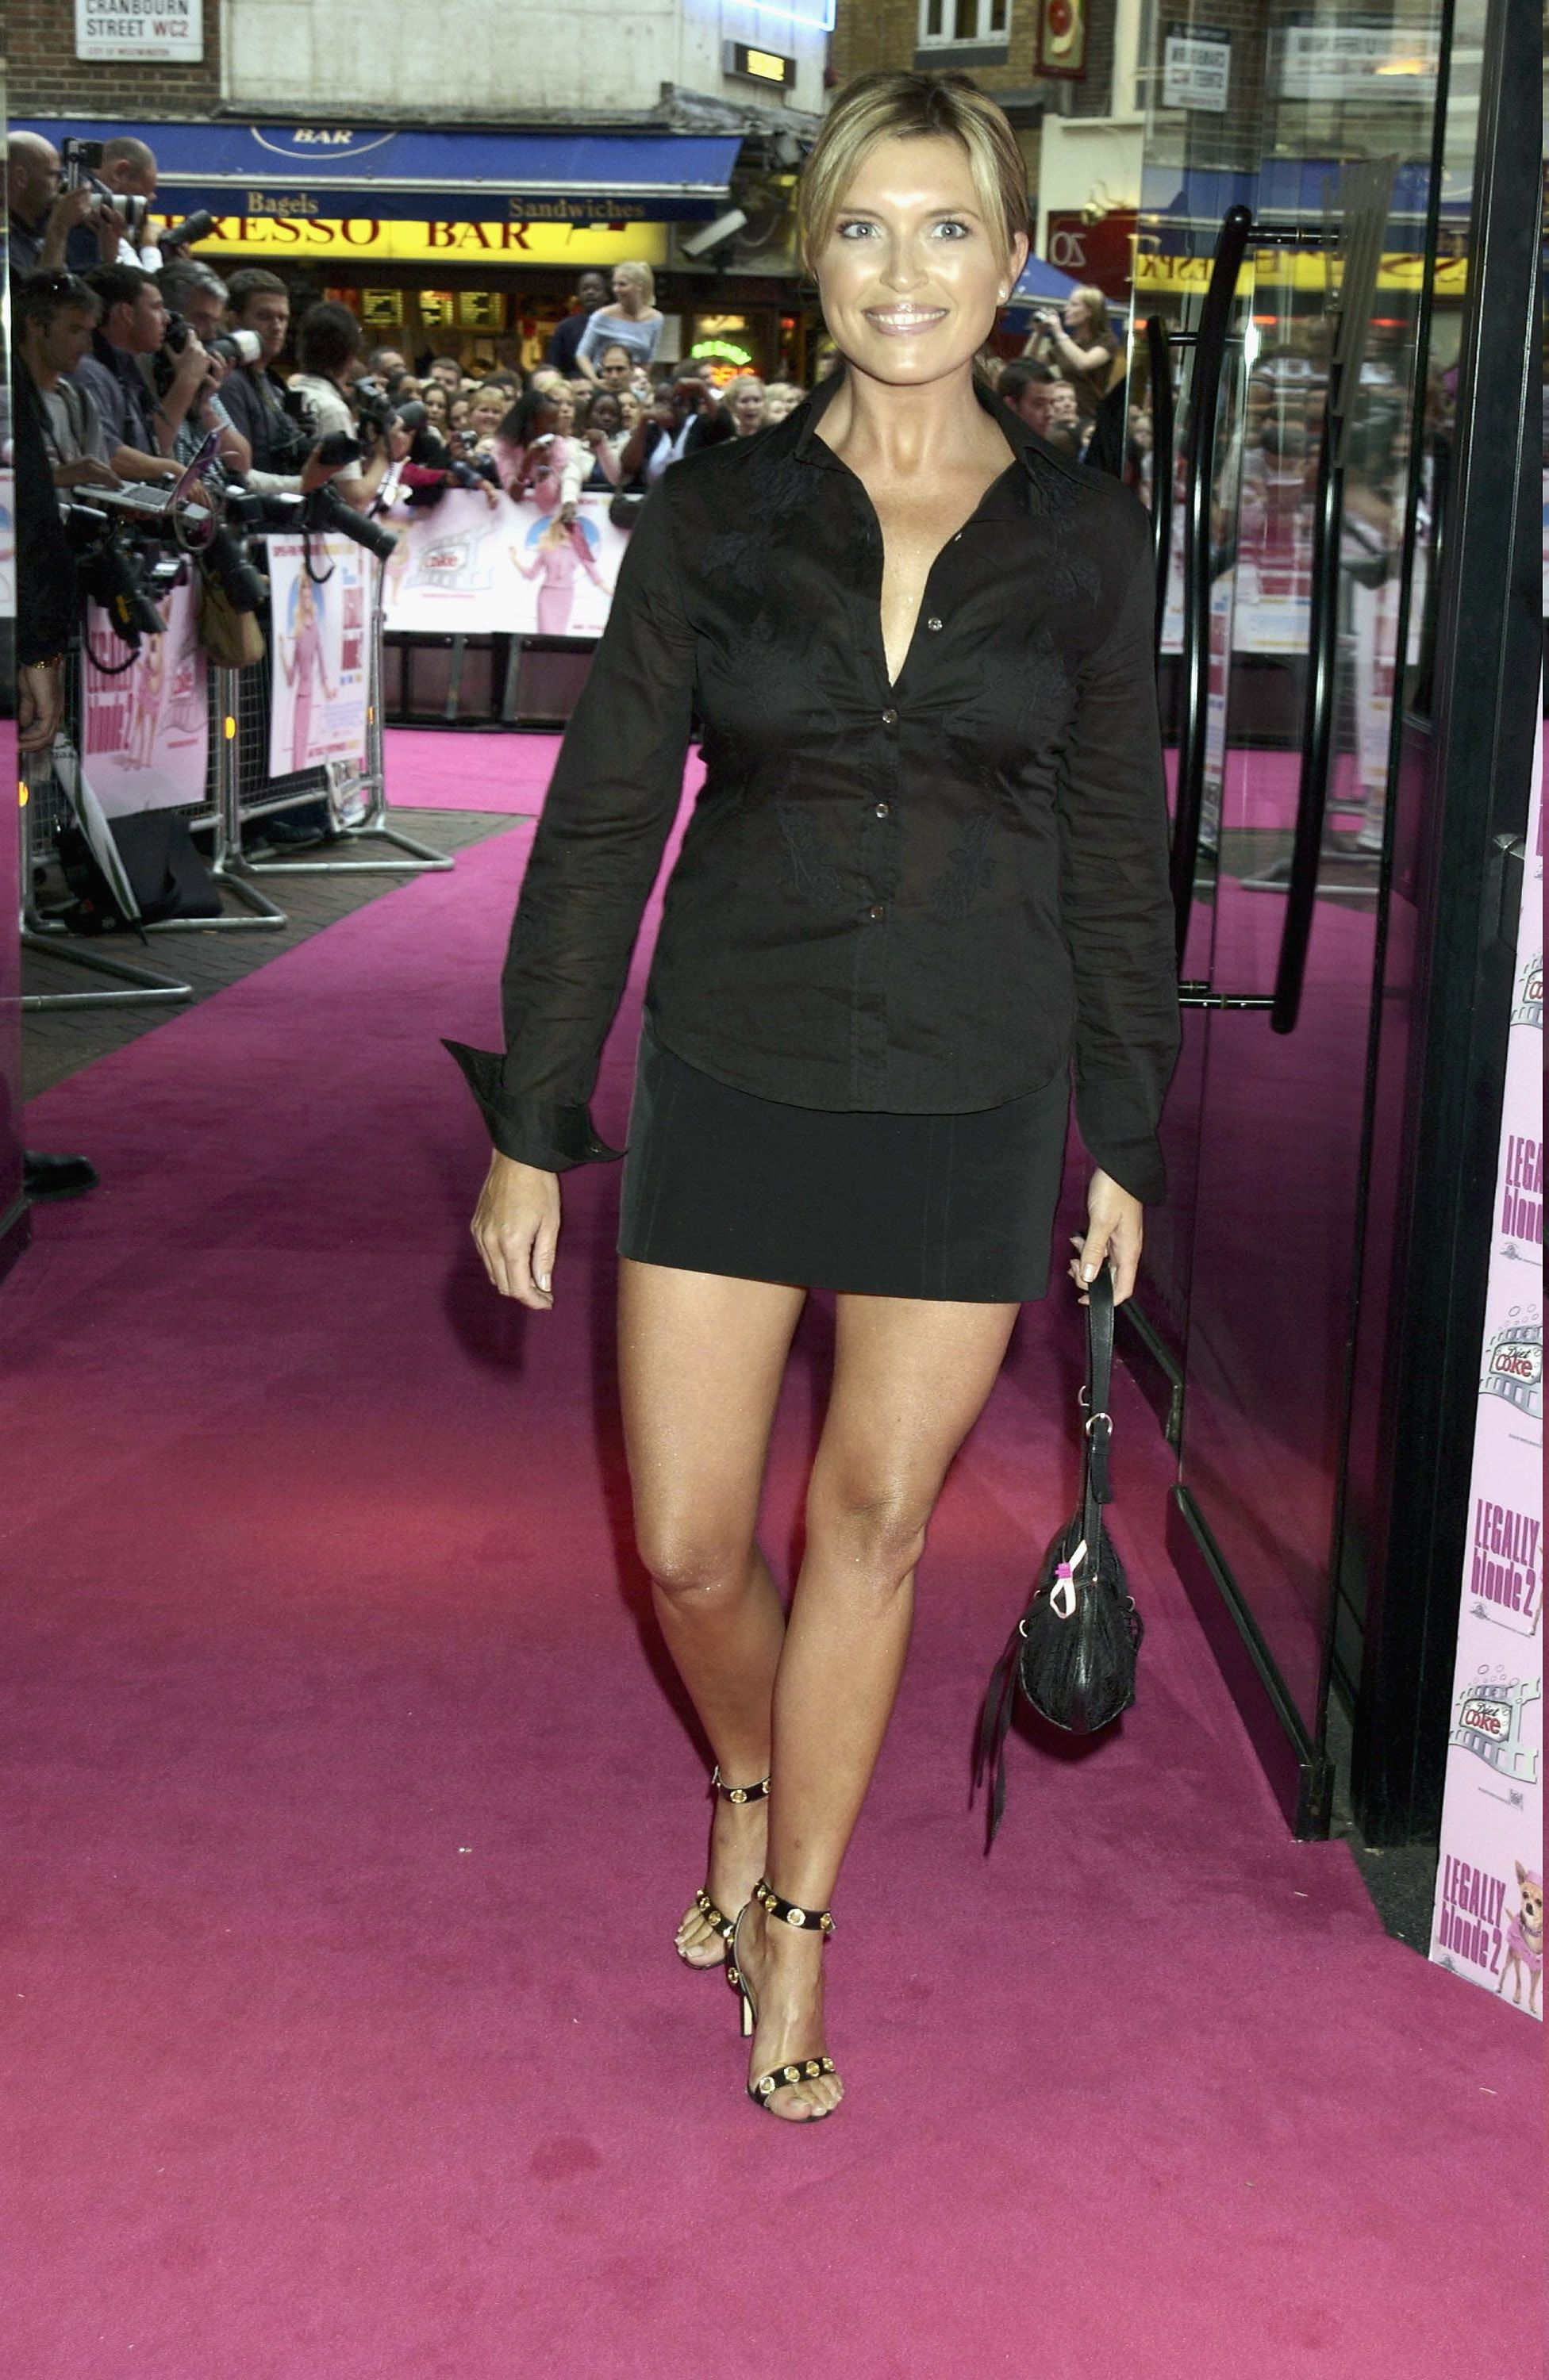 pictures Tina Hobley (born 1971)